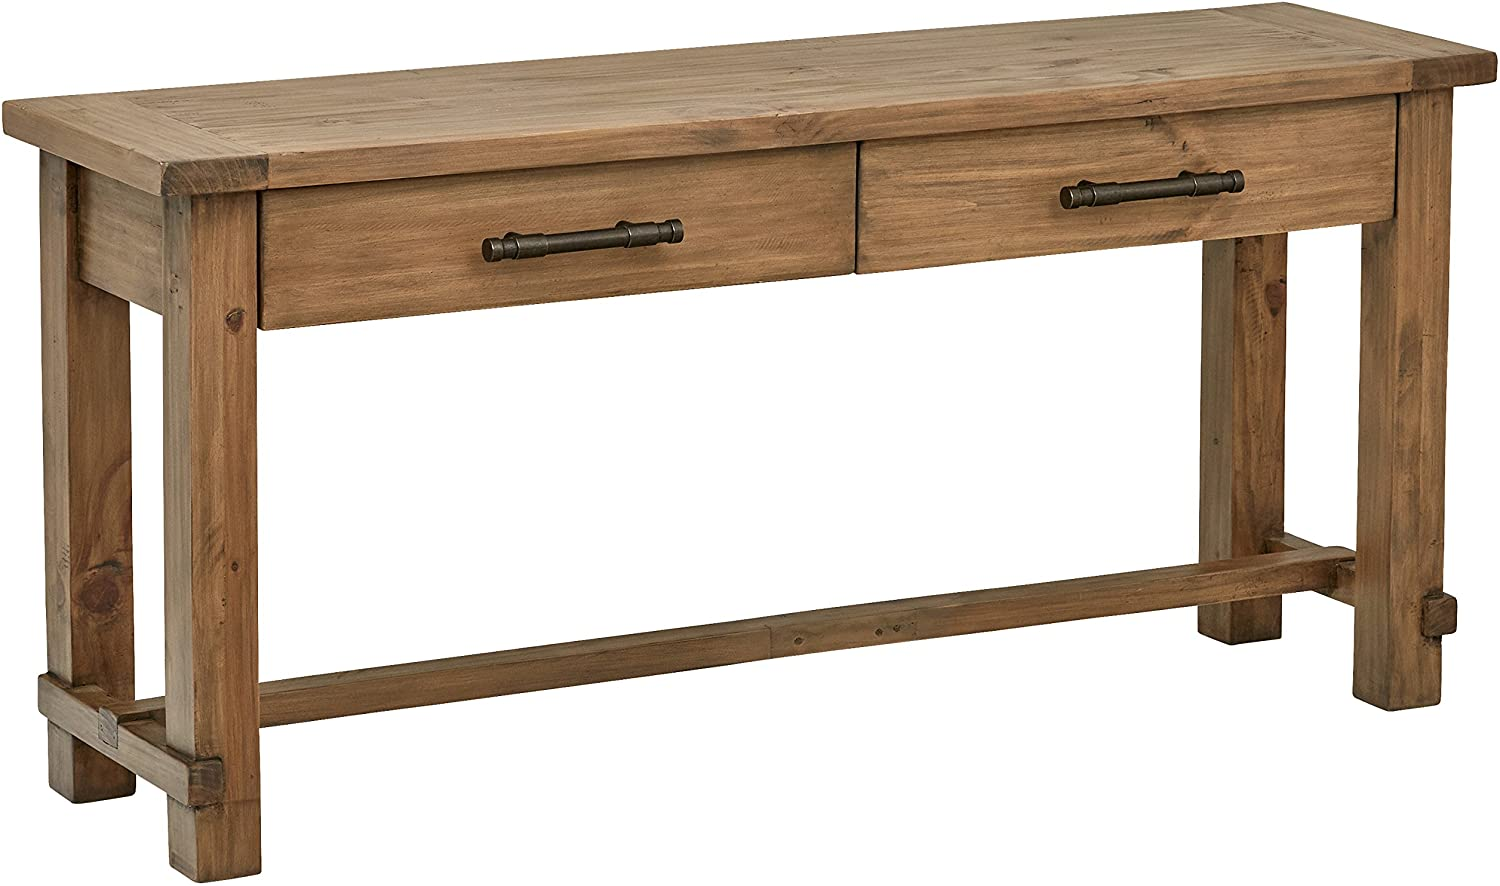 Amazon Brand – Stone & Beam Ferndale Rustic Console Table, 63